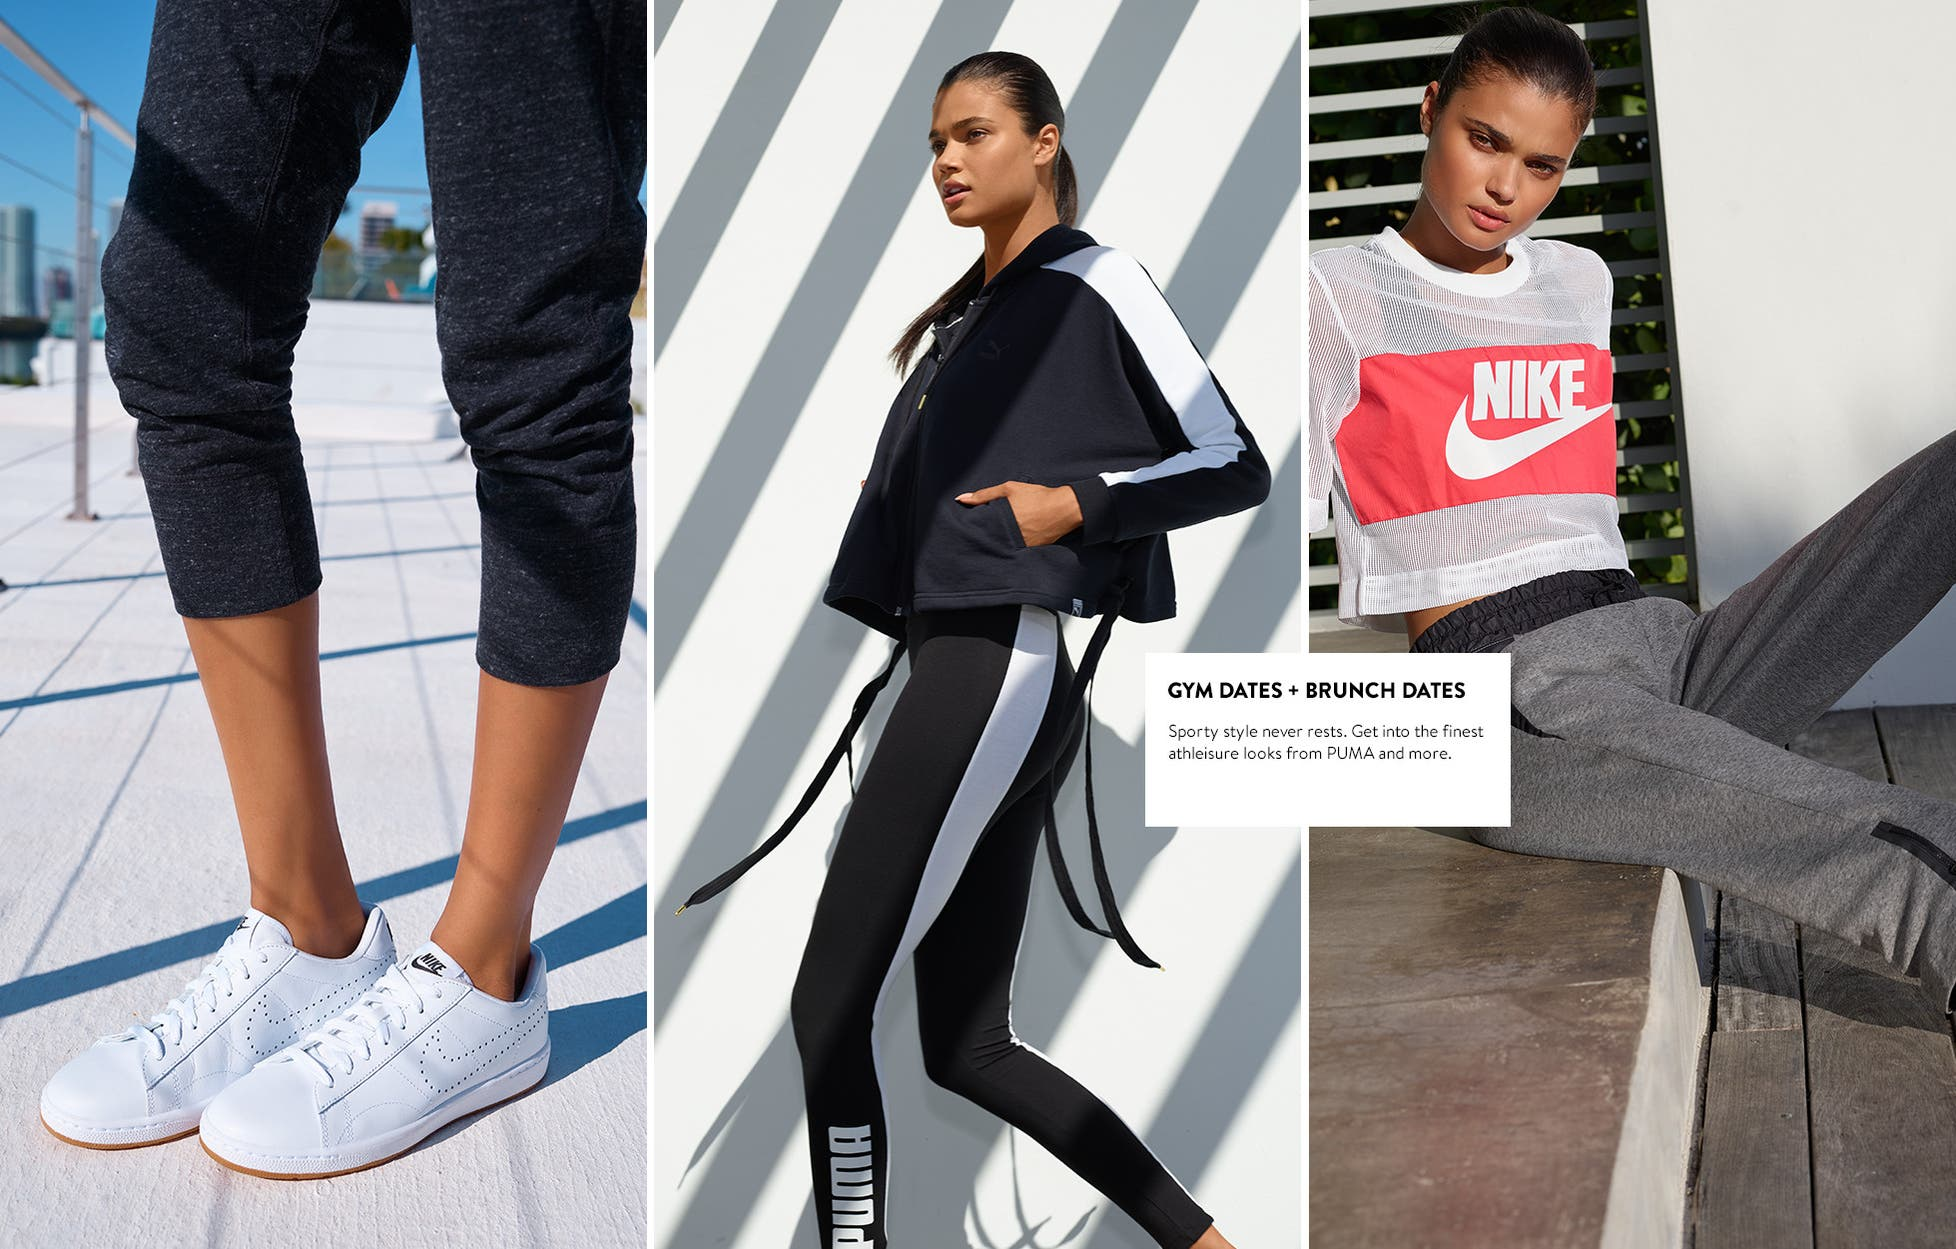 Gym dates and brunch dates: women's athleisure clothes and sneakers.